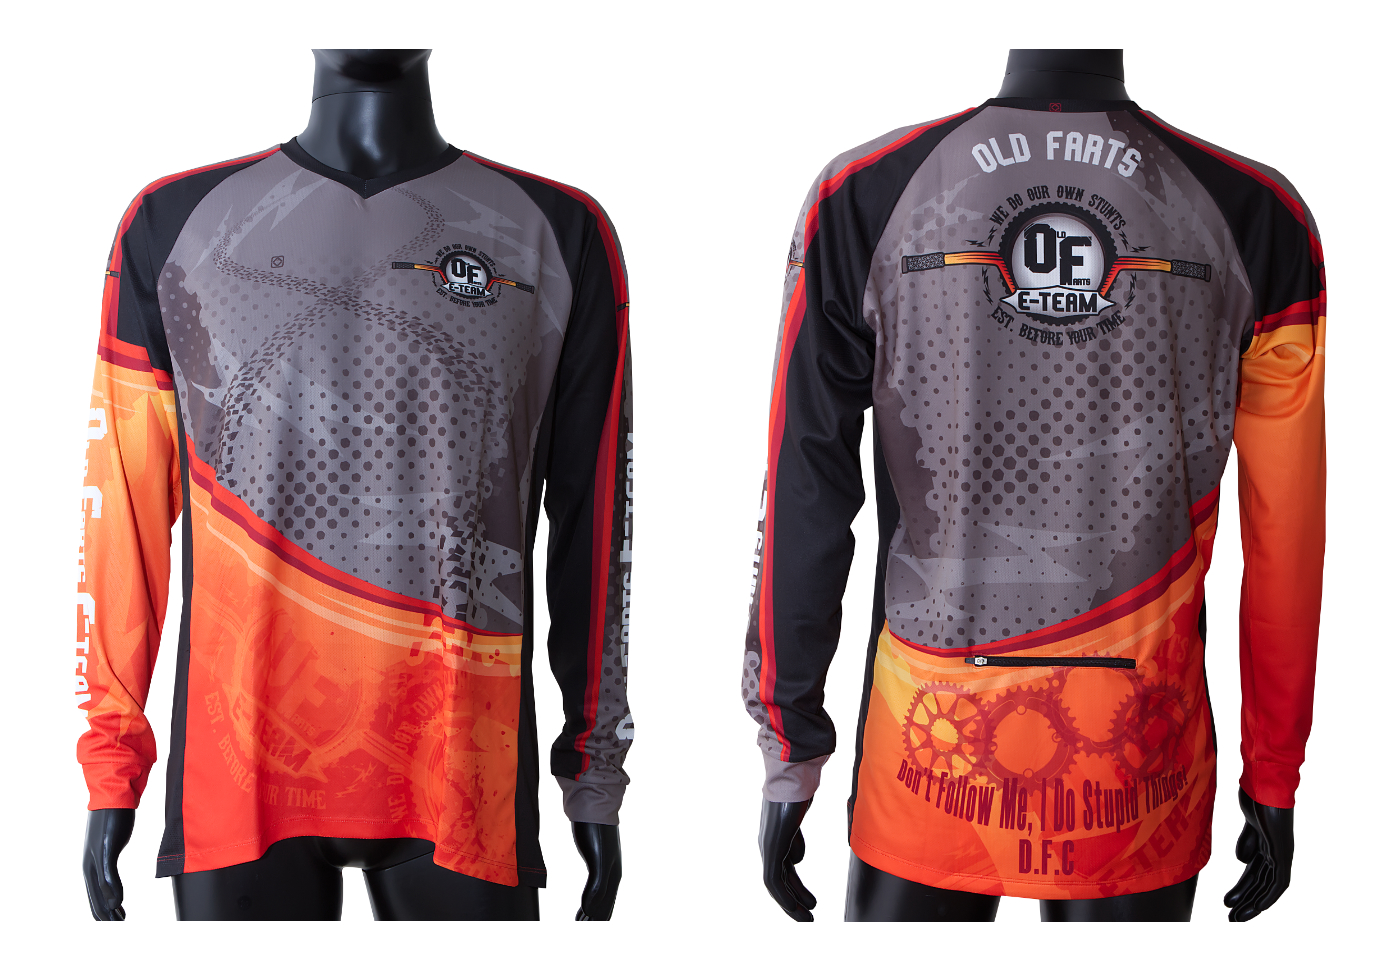 Old Farts MTB E-Team long sleeve custom designed jersey